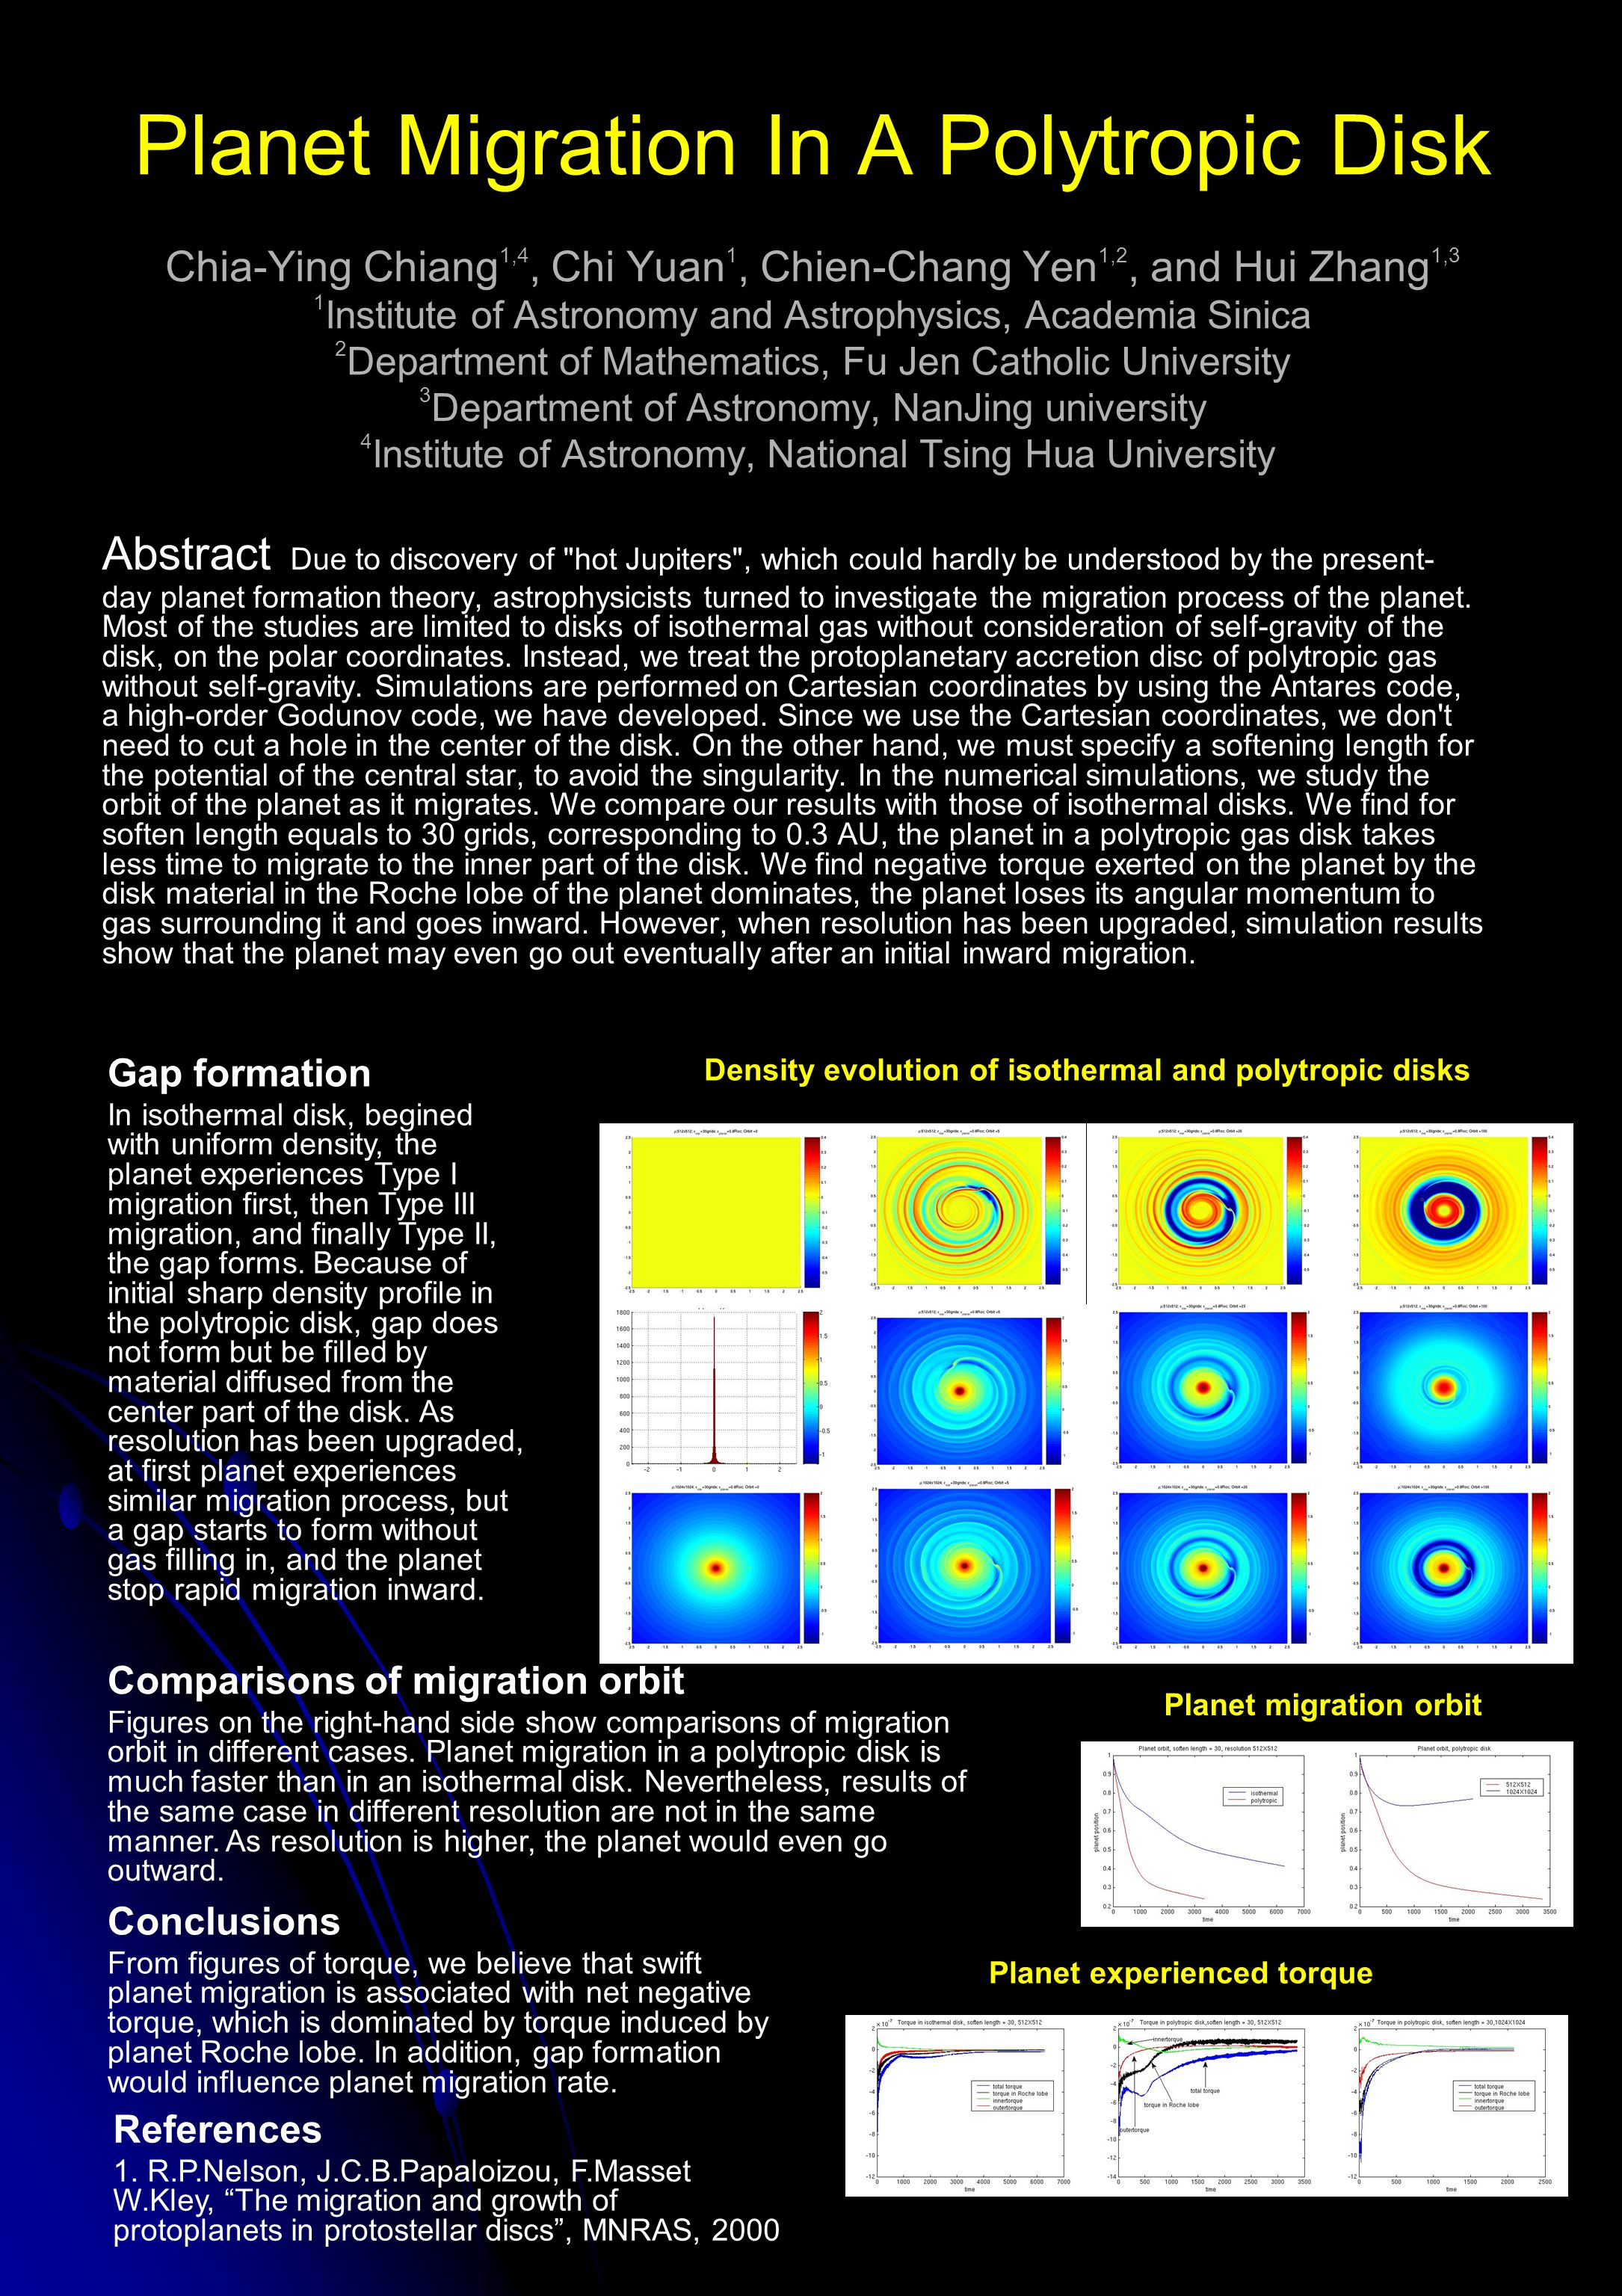 Planet Migration In A Polytropic Disk Chia-Ying Chiang 1,4, Chi Yuan 1, Chien-Chang Yen 1,2, and Hui Zhang 1,3 1 Institute of Astronomy and Astrophysics, Academia Sinica 2 Department of Mathematics, Fu Jen Catholic University 3 Department of Astronomy, NanJing university 4 Institute of Astronomy, National Tsing Hua University Abstract Due to discovery of hot Jupiters , which could hardly be understood by the present- day planet formation theory, astrophysicists turned to investigate the migration process of the planet.